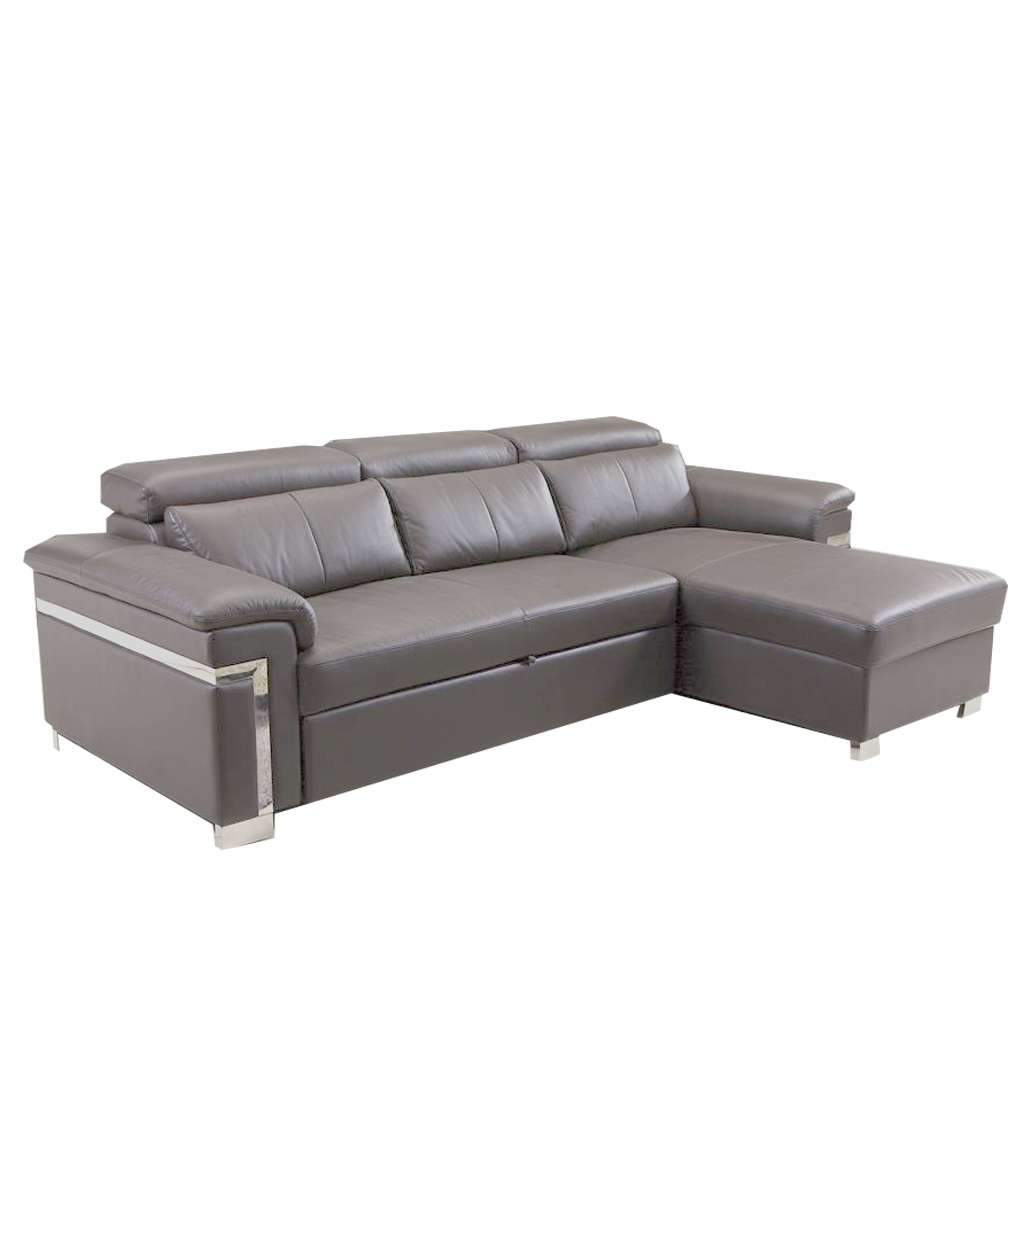 Sofa Berlin Design Berlin Sectional Bed